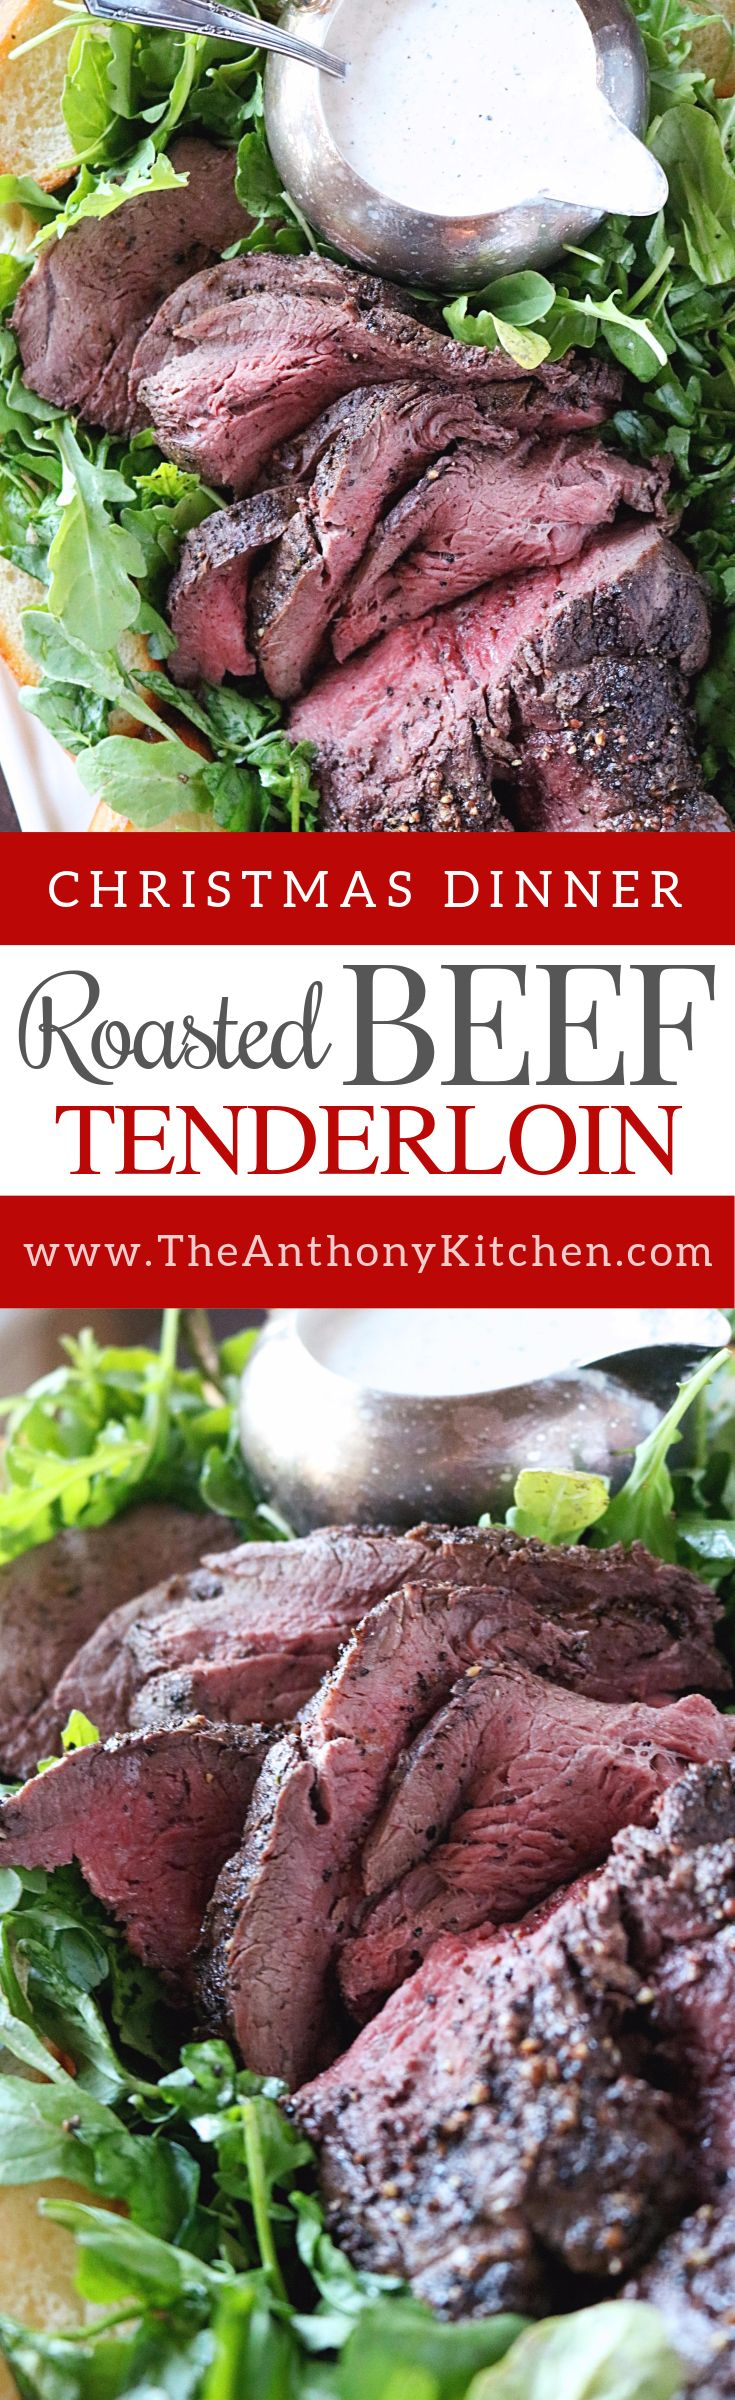 Beef Tenderloin Recipe | A simple and easy recipe for roasted beef tenderloin, with helpful tips for purchasing, preparing and cooking | #beeftenderloin #christmasdinner #holidaymealidea